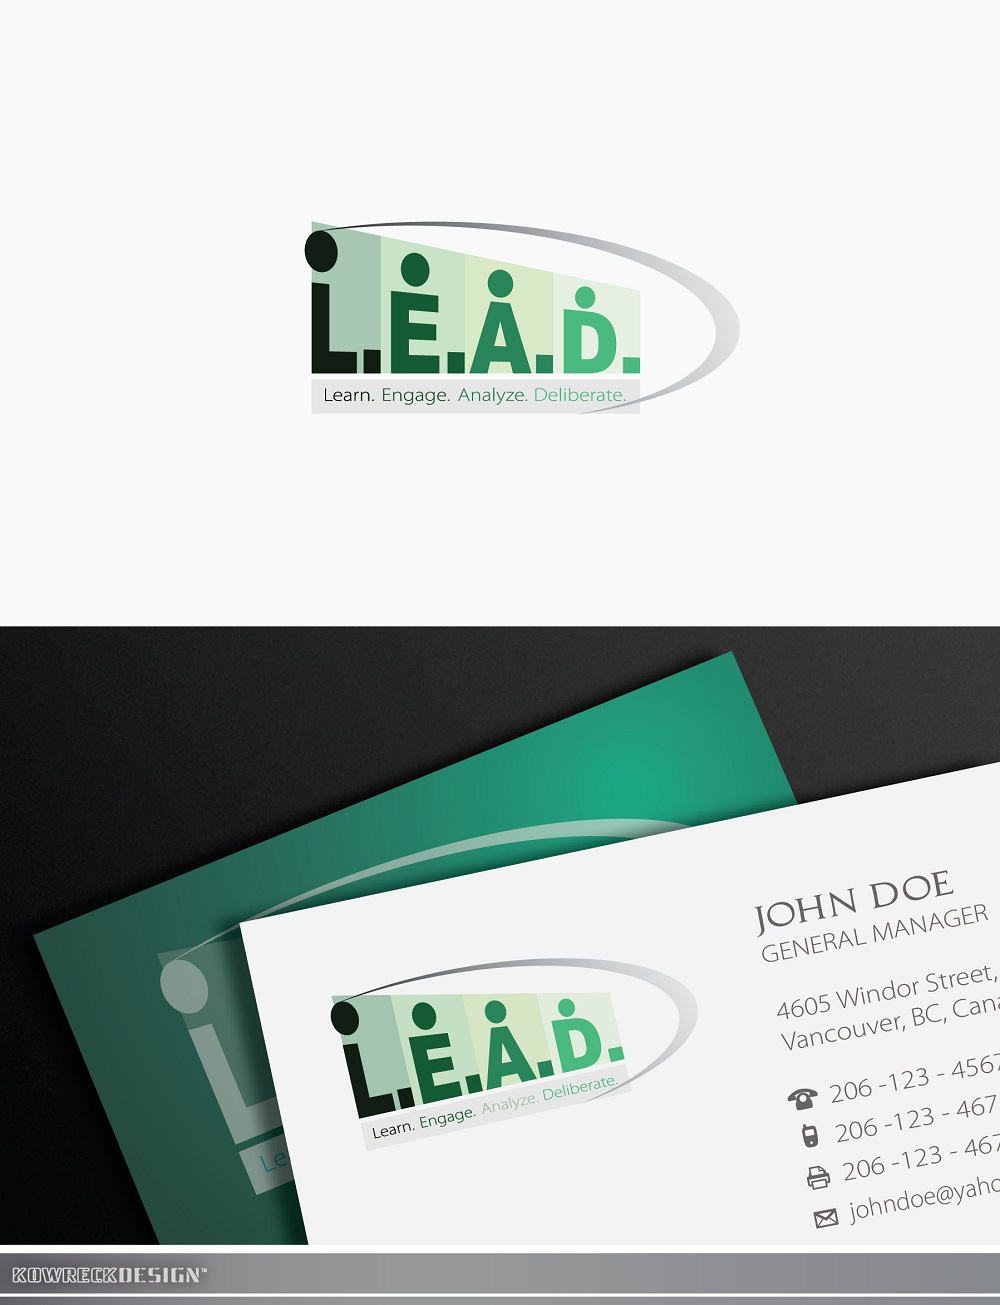 Logo Design by kowreck - Entry No. 110 in the Logo Design Contest L.E.A.D. (learn, engage, analyze, deliberate) Logo Design.